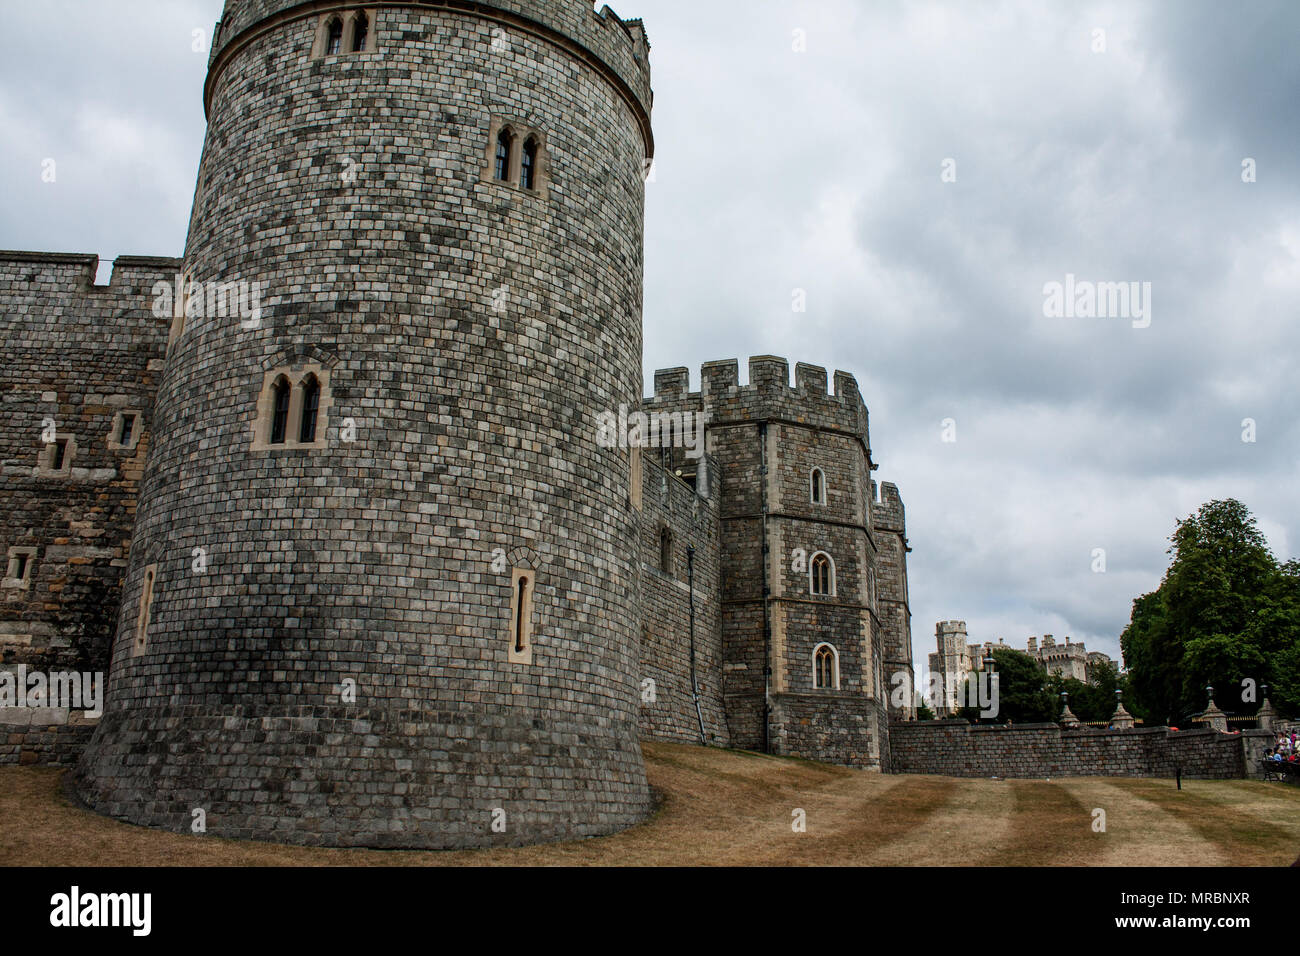 Outside view of the Henry VIII gateway in Windsor castle, residence of the british royal family in England, UK. - Stock Image